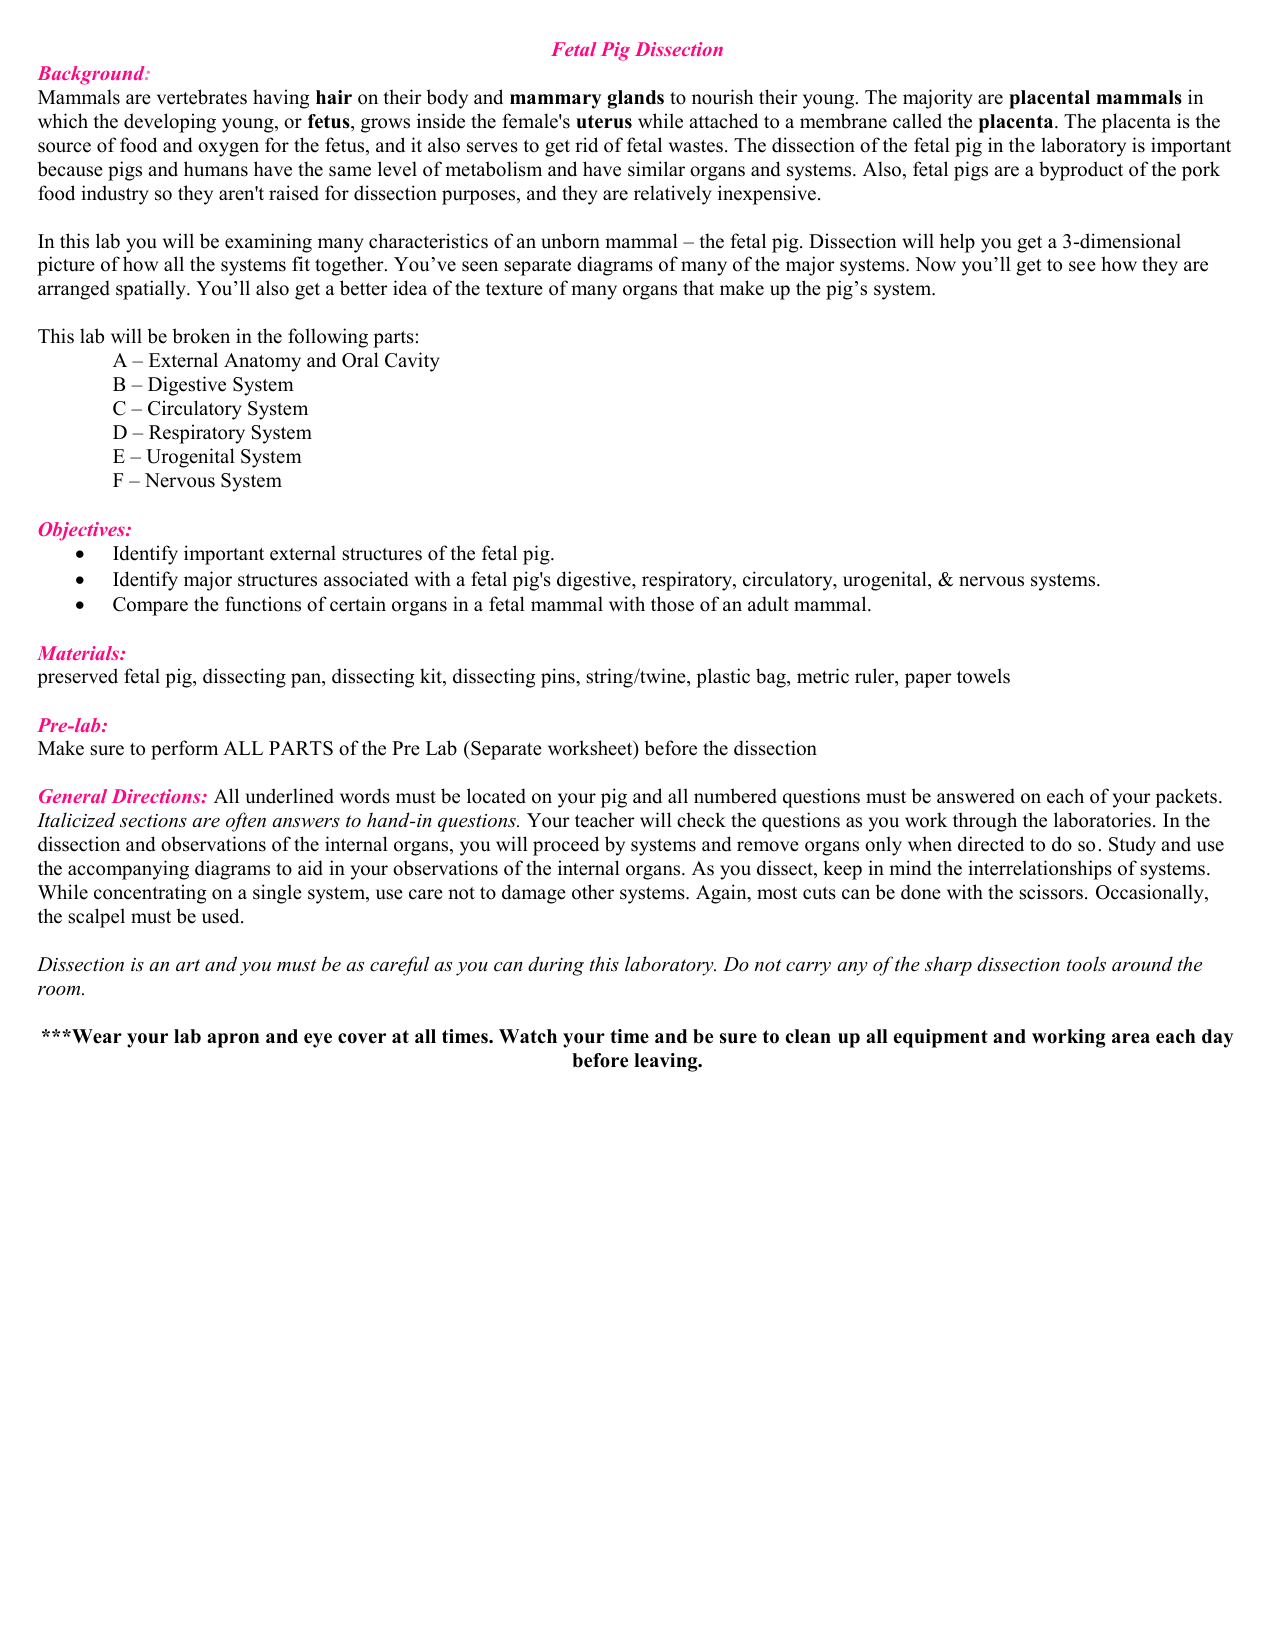 pig dissection lab report essay Lastly, i truly enjoyed the fetal pig lab page 1 of 2 the fetal pig was identified as a the fetal pigs that are used for dissection come from the.